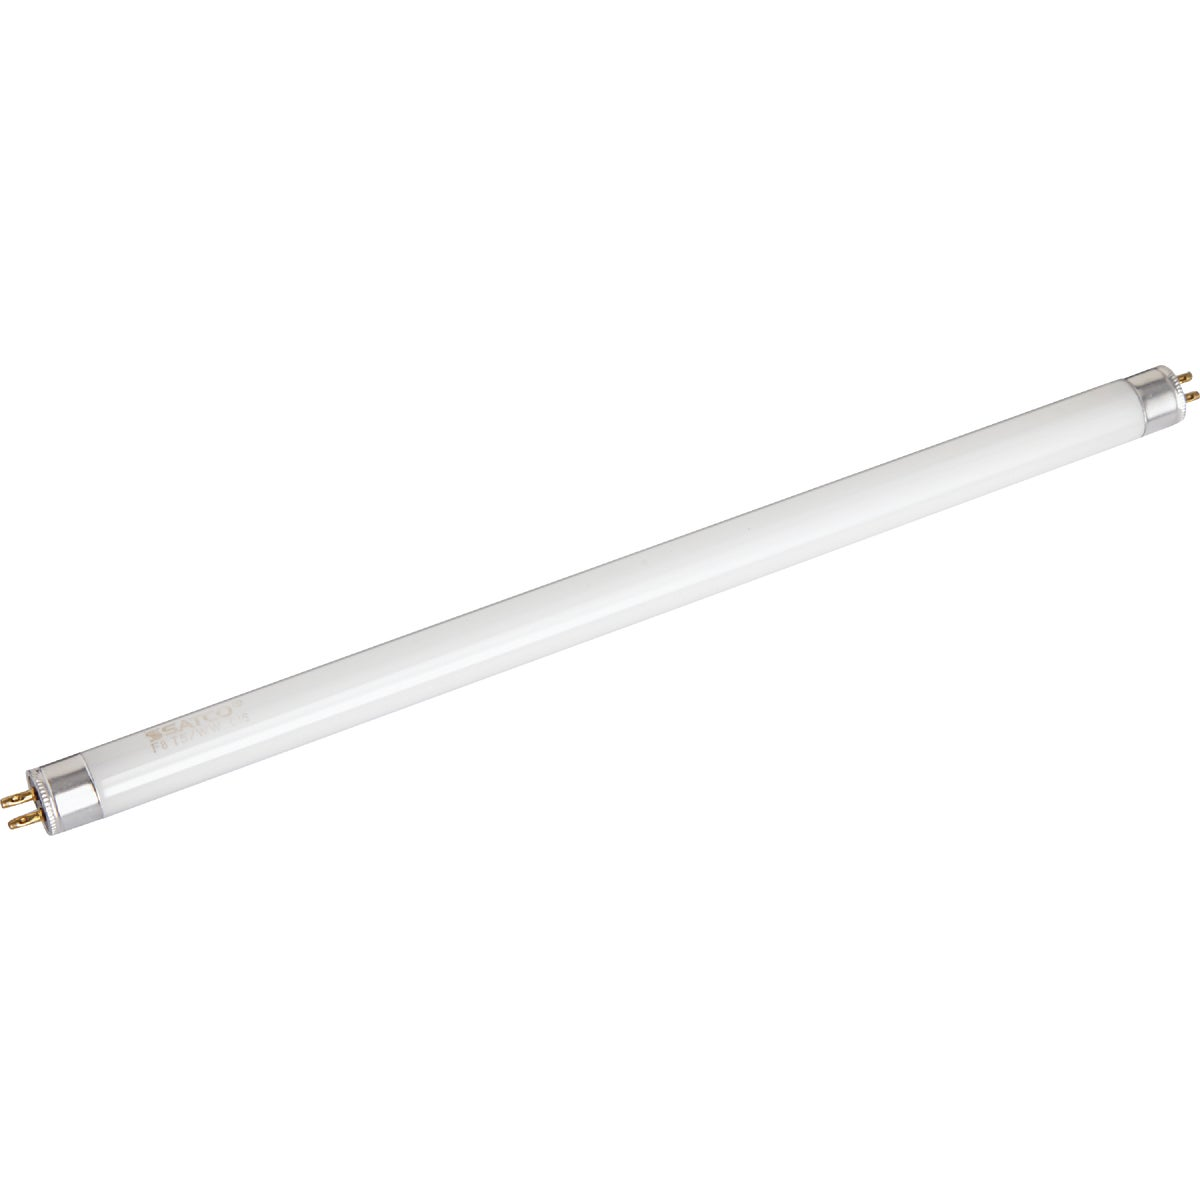 "8W 12"" T5 WW FLUOR TUBE - 25425 by G E Lighting"